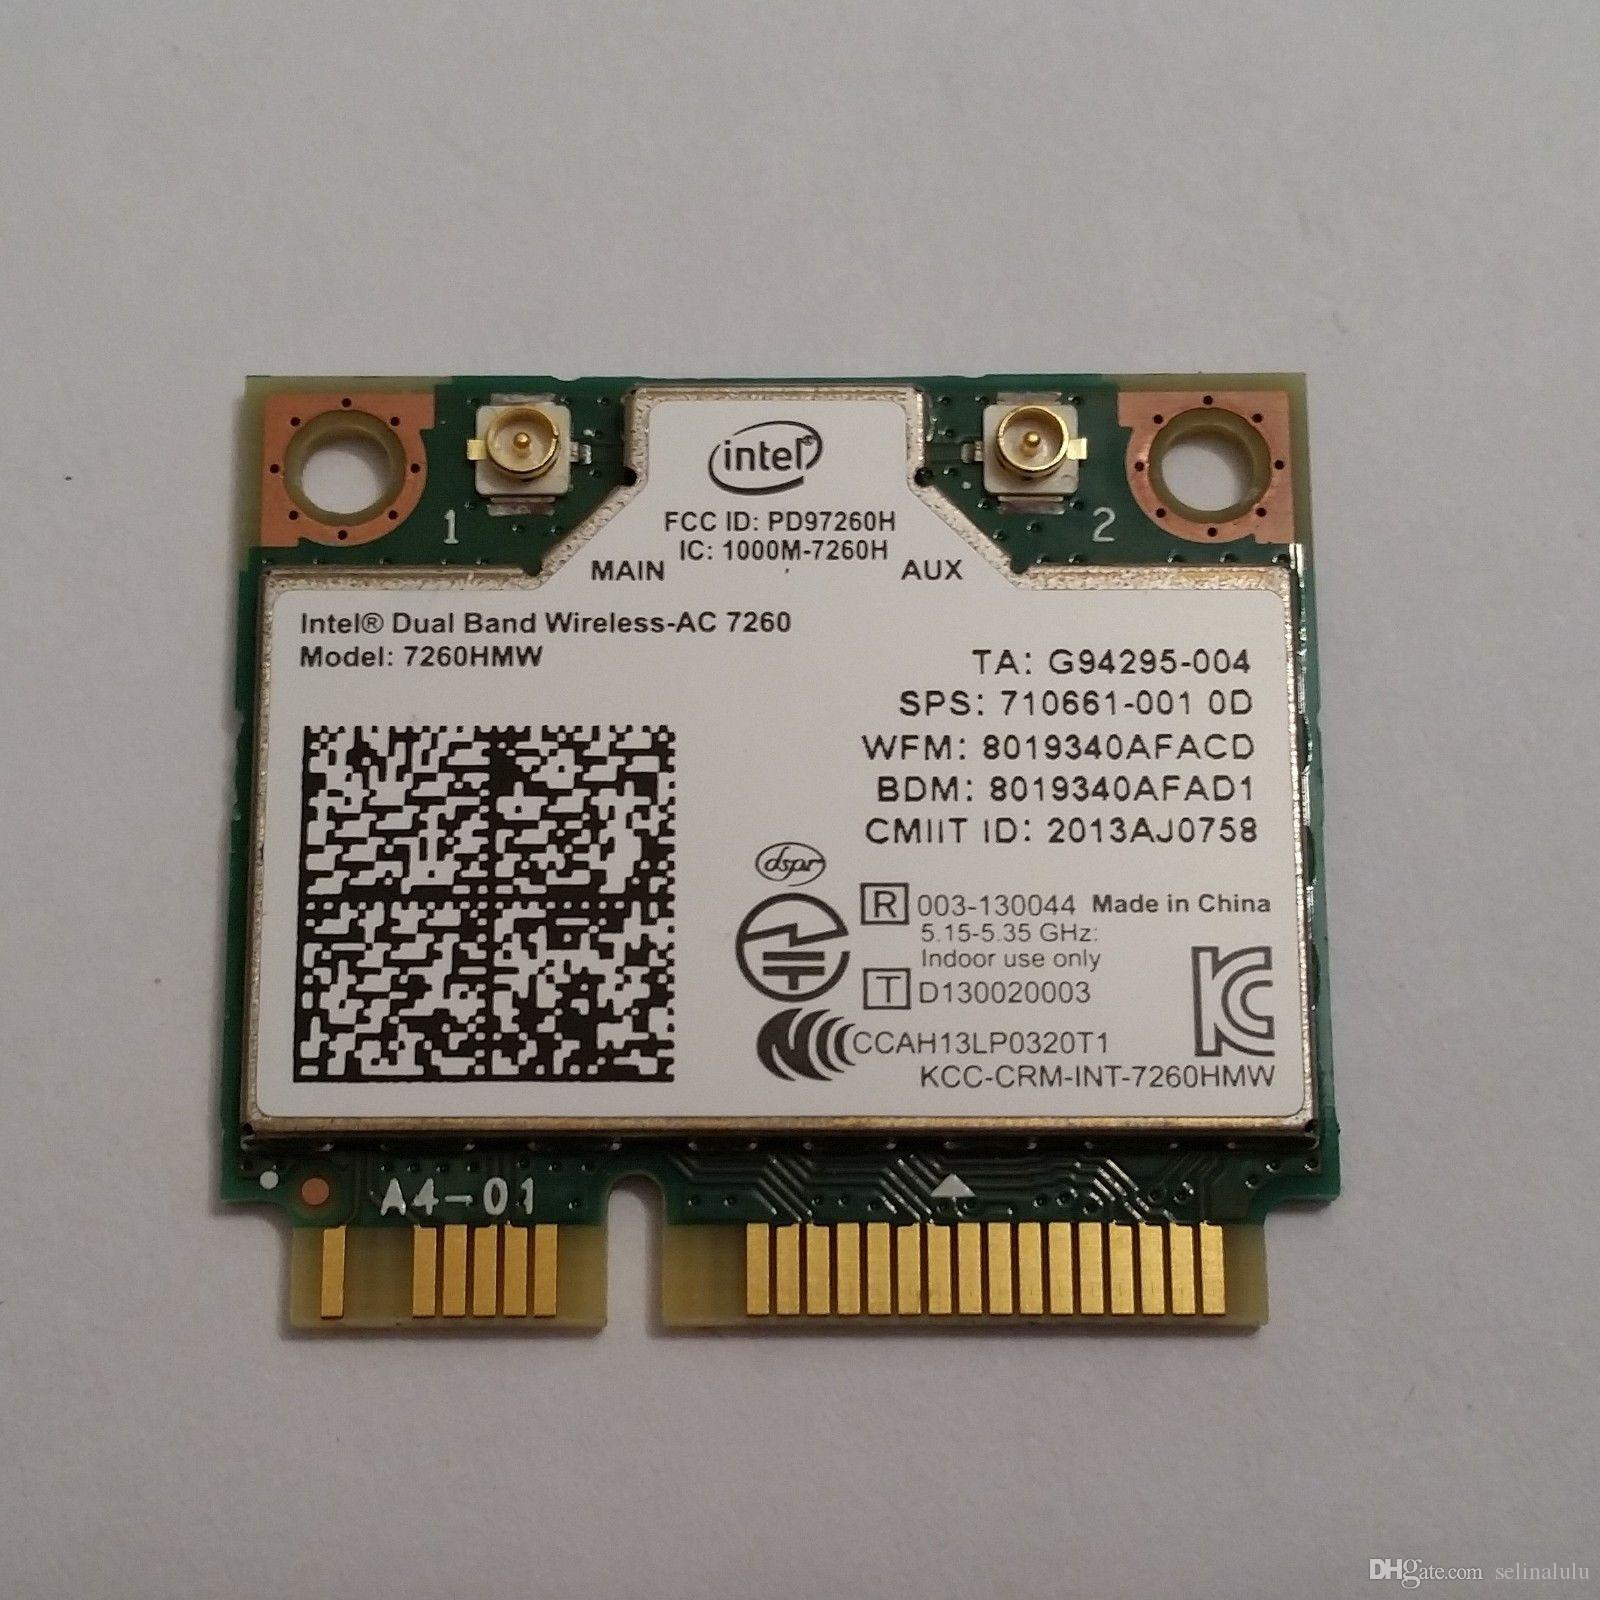 Wireless card for intel 7260HMW 710661-001/784639-005 ac 7260 dual band  867mbps WiFi+BT 4 0 PCIe for HP EliteBook 840 14 17